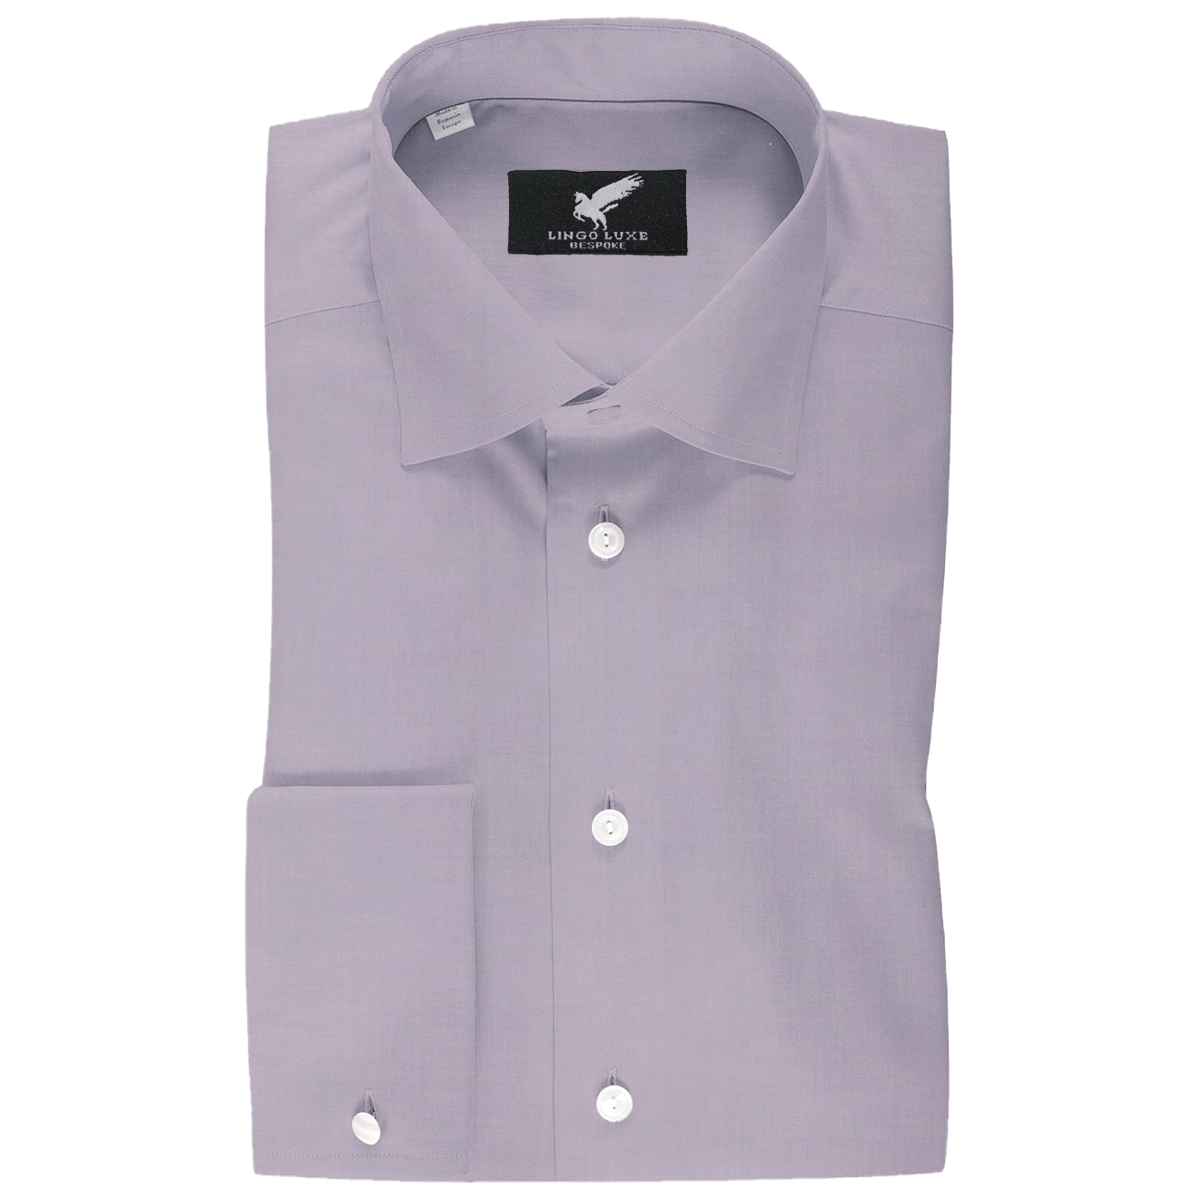 Men's Business Basics Shirt | Lingo Luxe Lavender-Lingo Luxe Bespoke